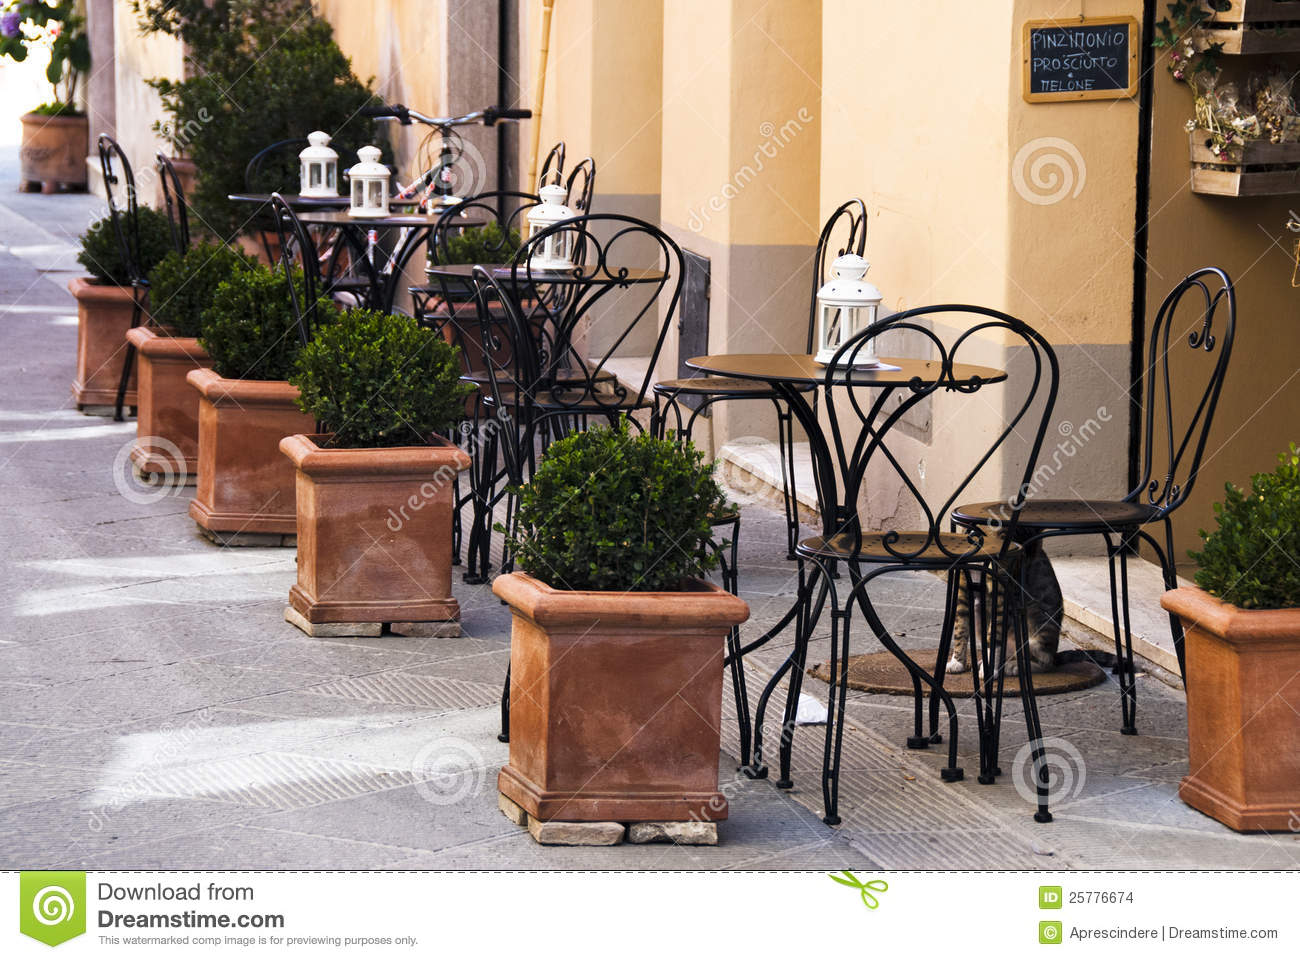 Italian Outdoor Cafe Stock Images Image 25776674 : italian outdoor cafe 25776674 from www.dreamstime.com size 1300 x 960 jpeg 210kB